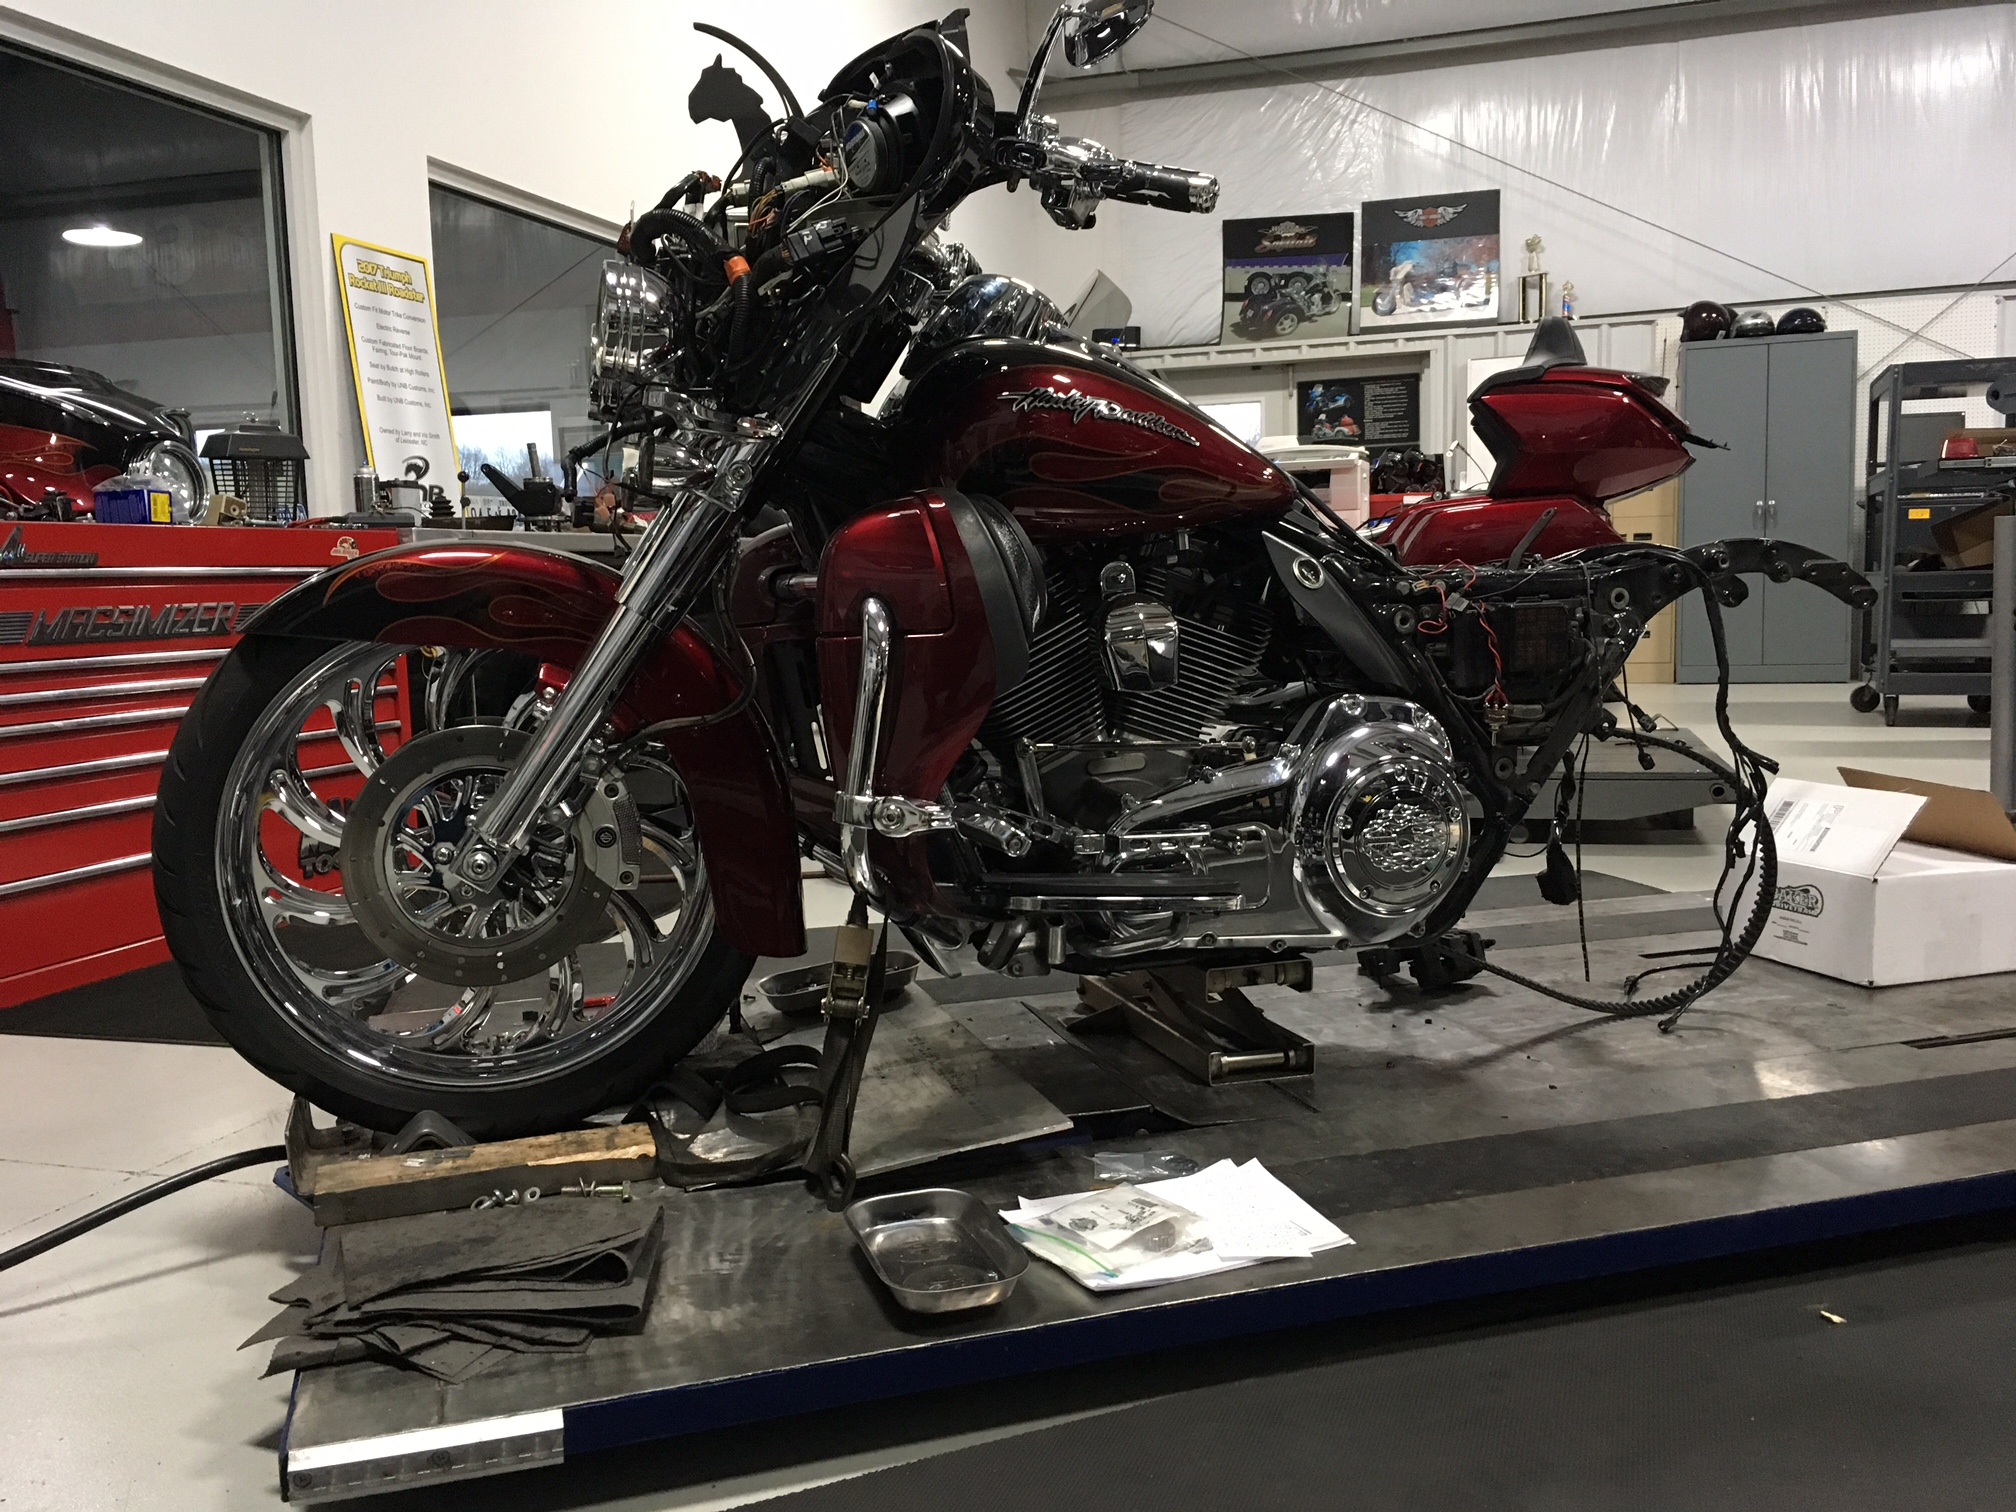 getting the harley ready for a trike kit